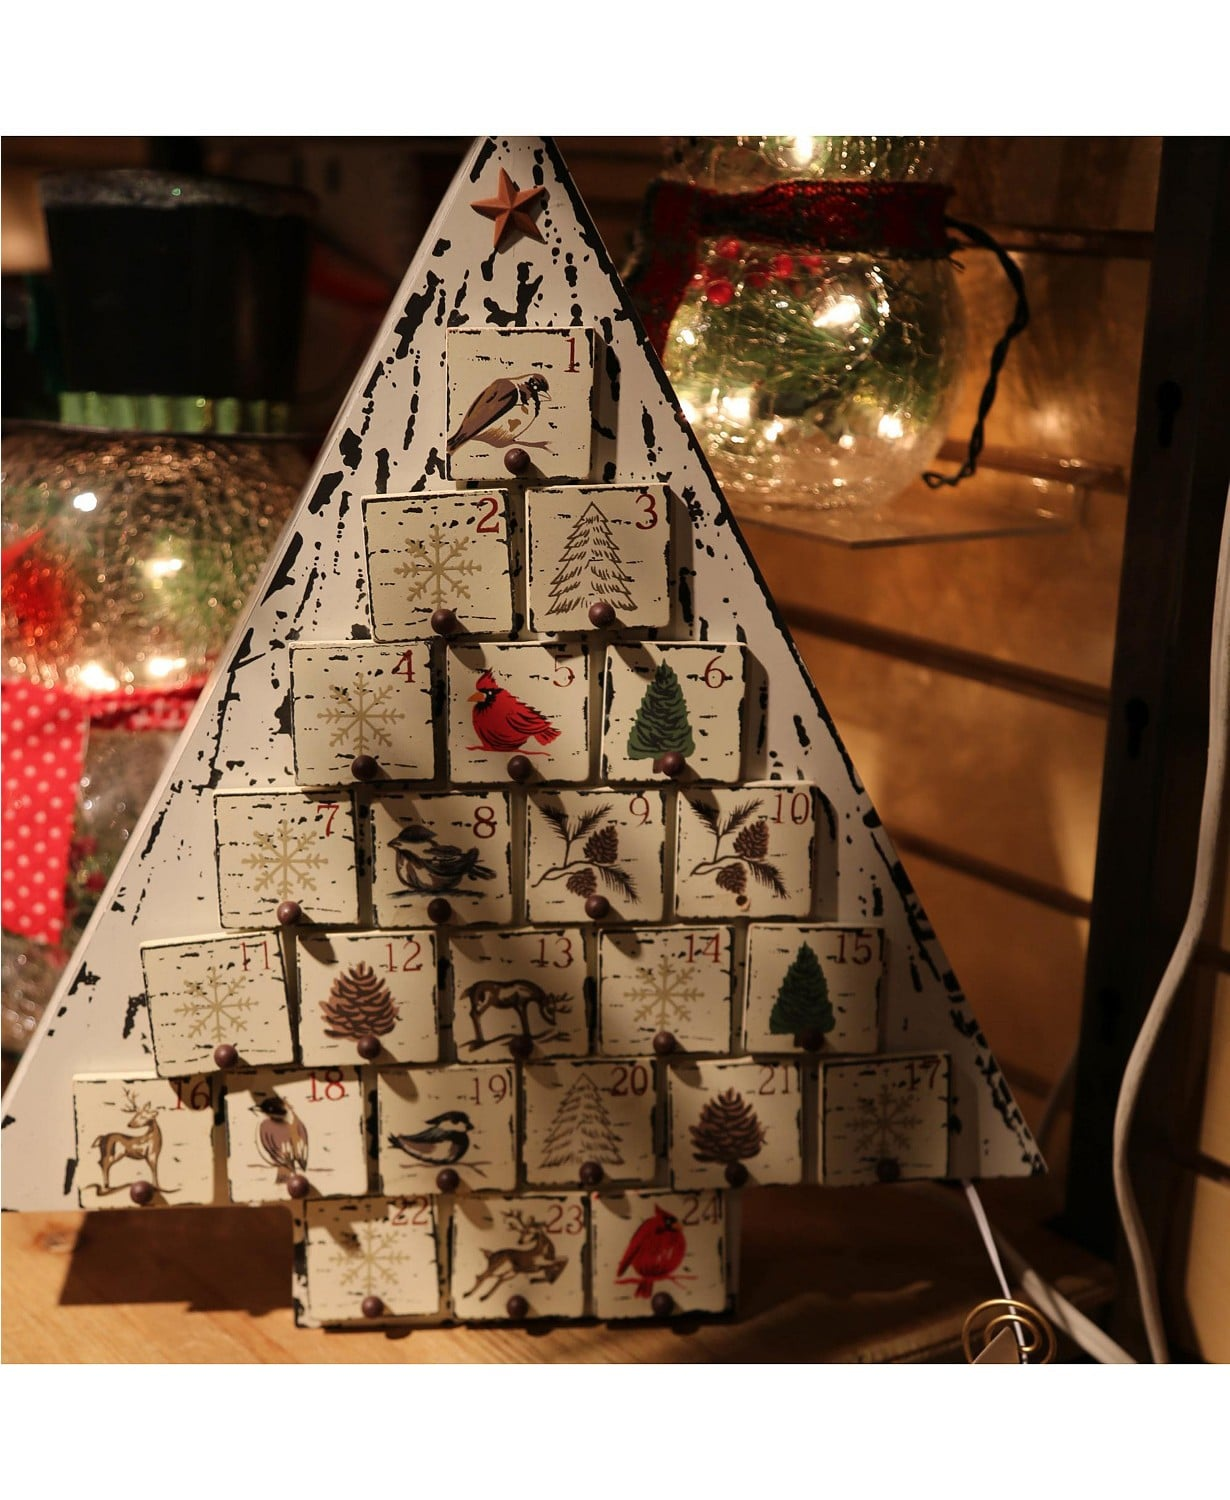 Sterling Rustic Wooden Christmas Tree Advent Calendar Best Christmas Advent Calendars 2019 Popsugar Australia Parenting Photo 5